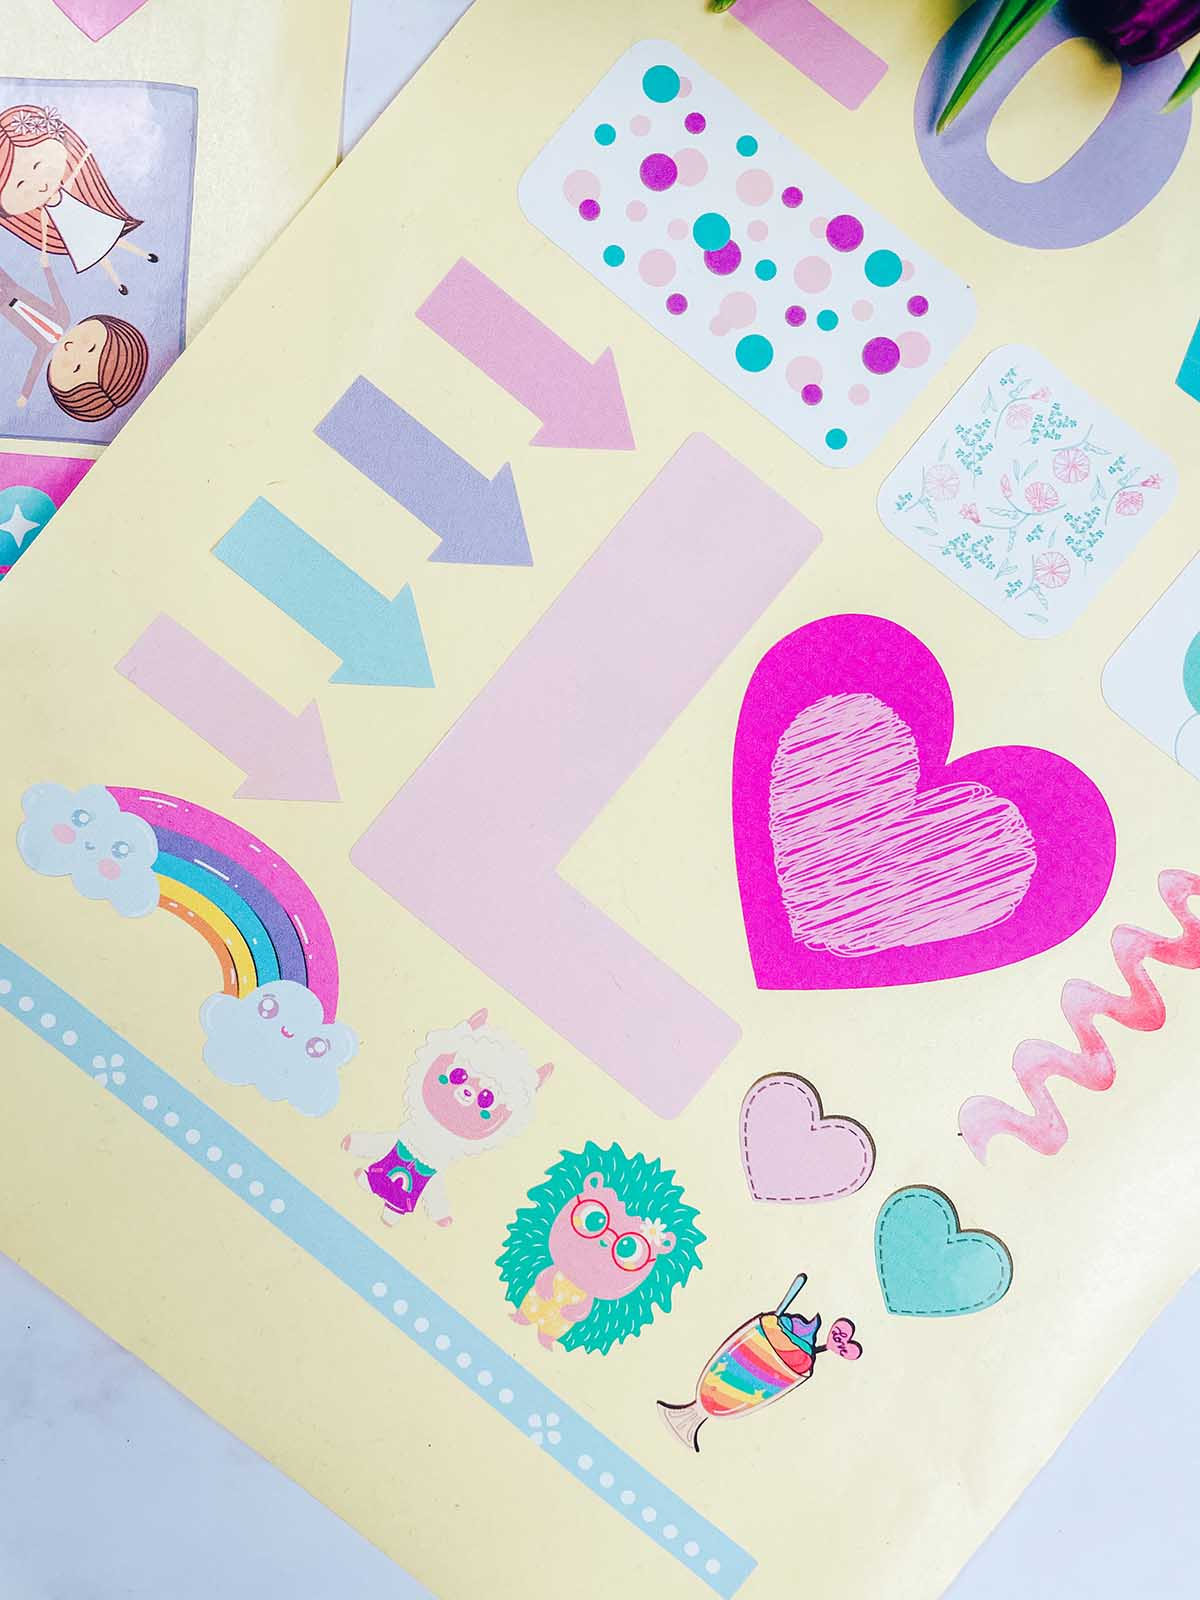 Cricut scrapbooking layout and bullet journal and planner stickers